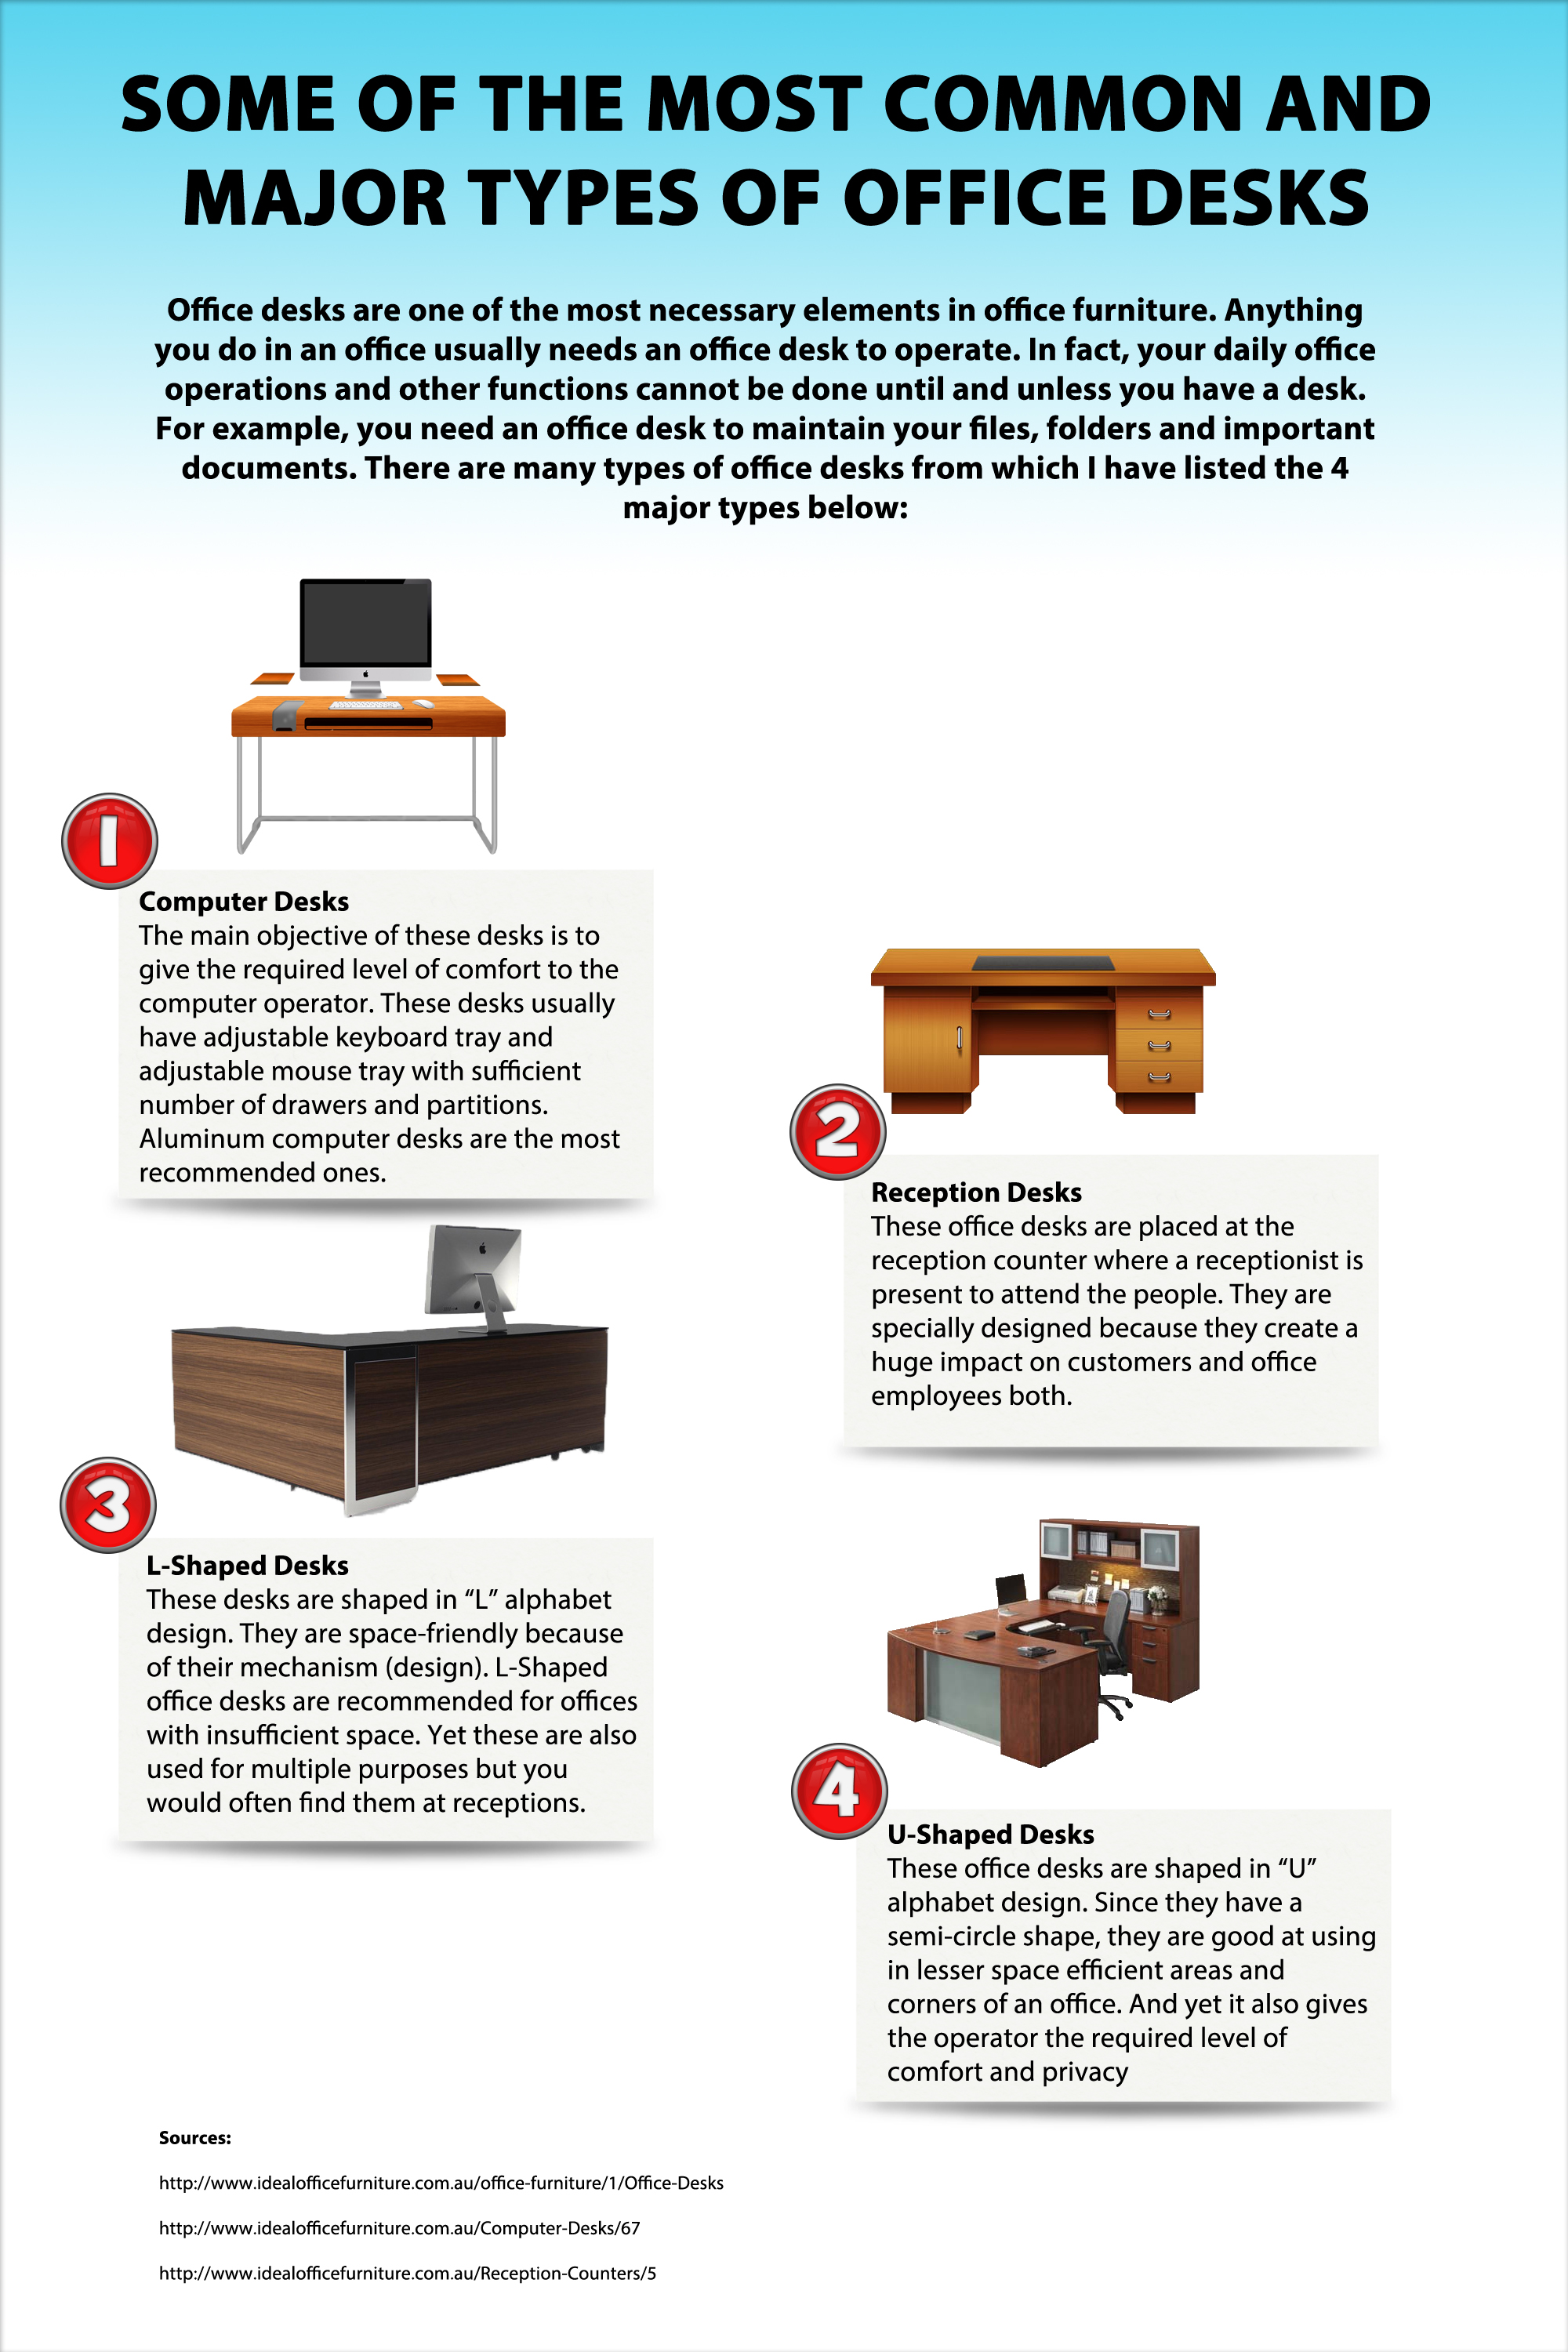 Types Of Desks Simple Some Of The Most Common And Major Types Of Office Desks  Visual.ly Design Inspiration